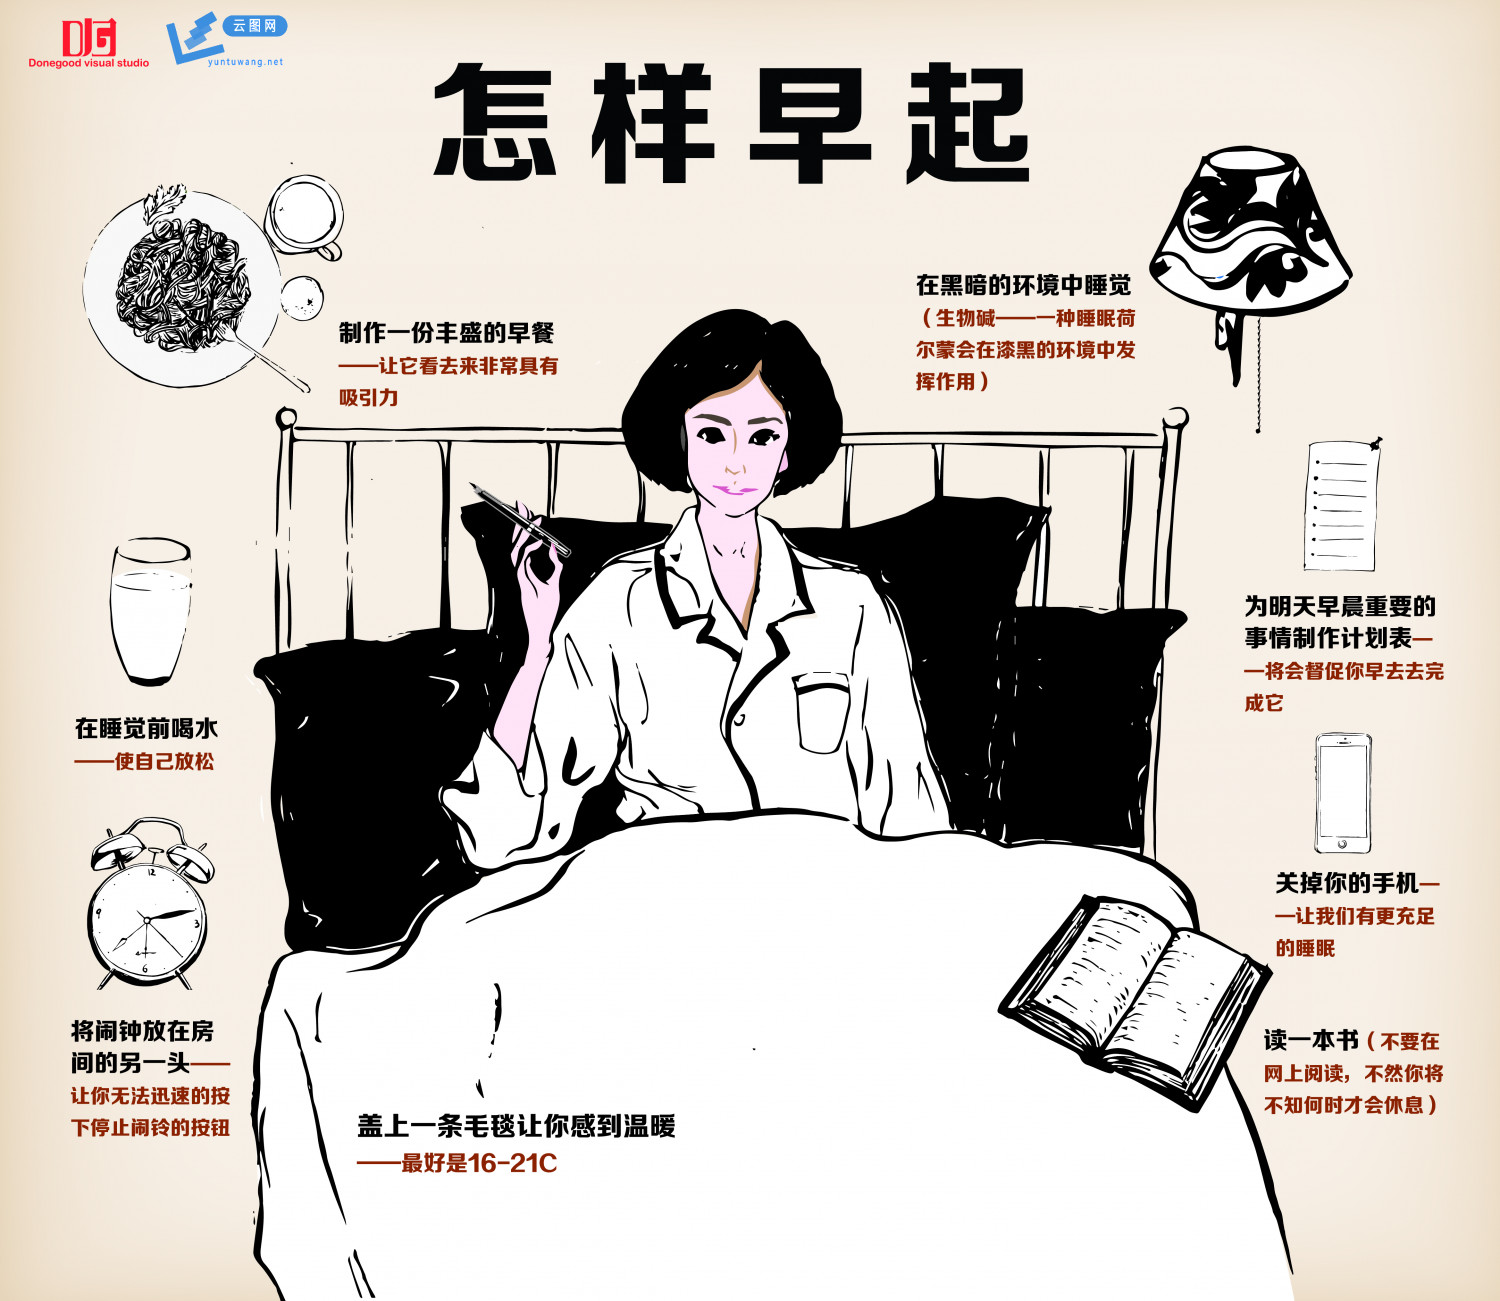 怎样早起(How to get up early in the morning) Infographic